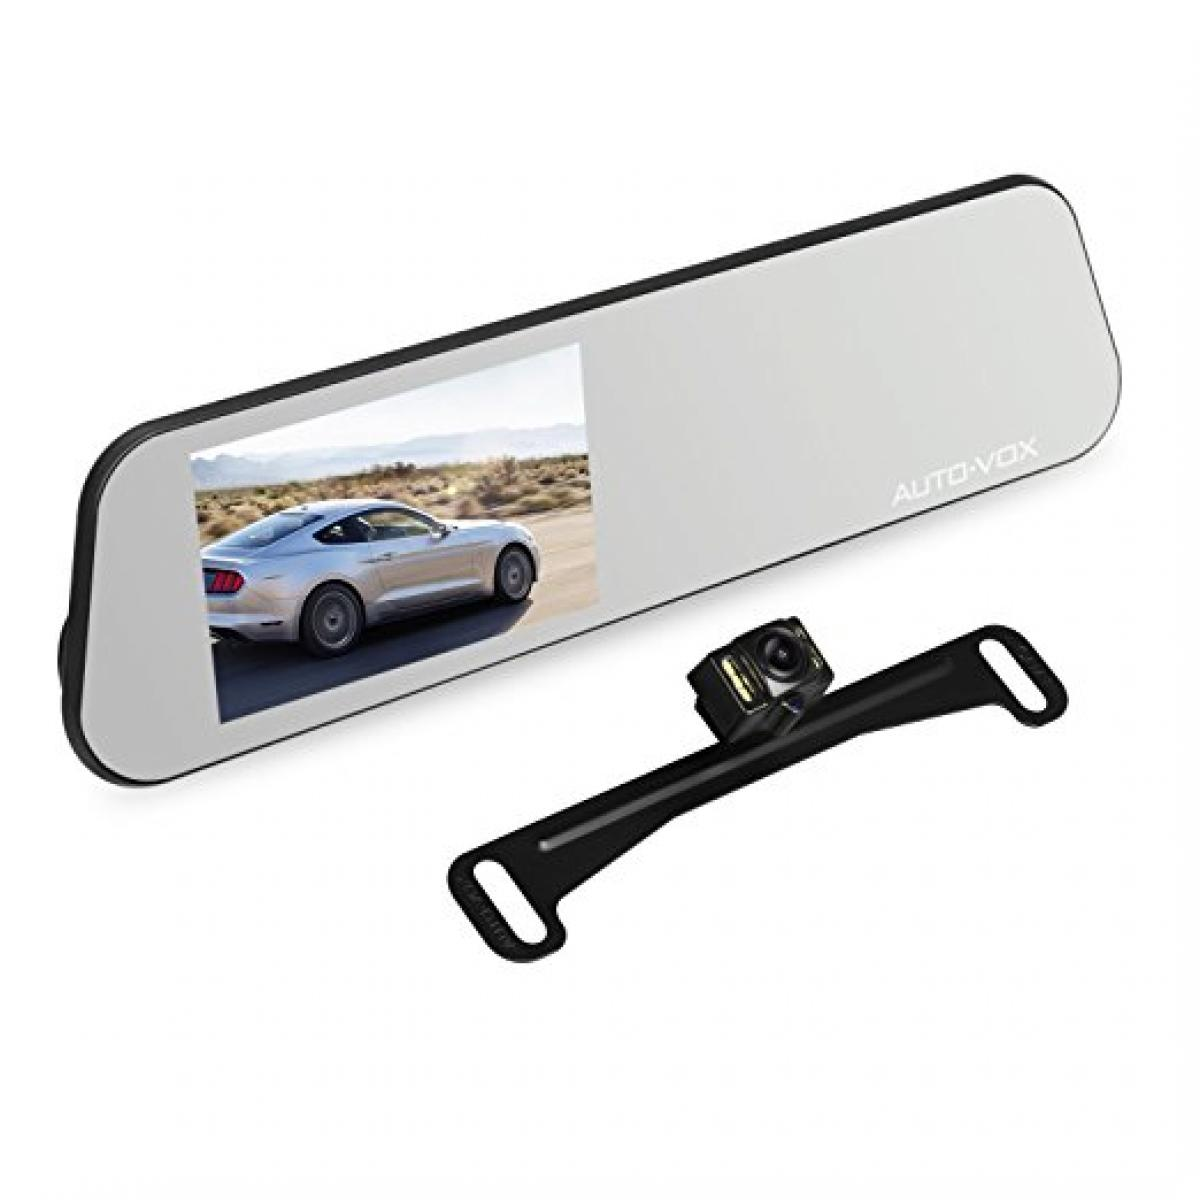 M6 Backup Camera and Monitor Kit